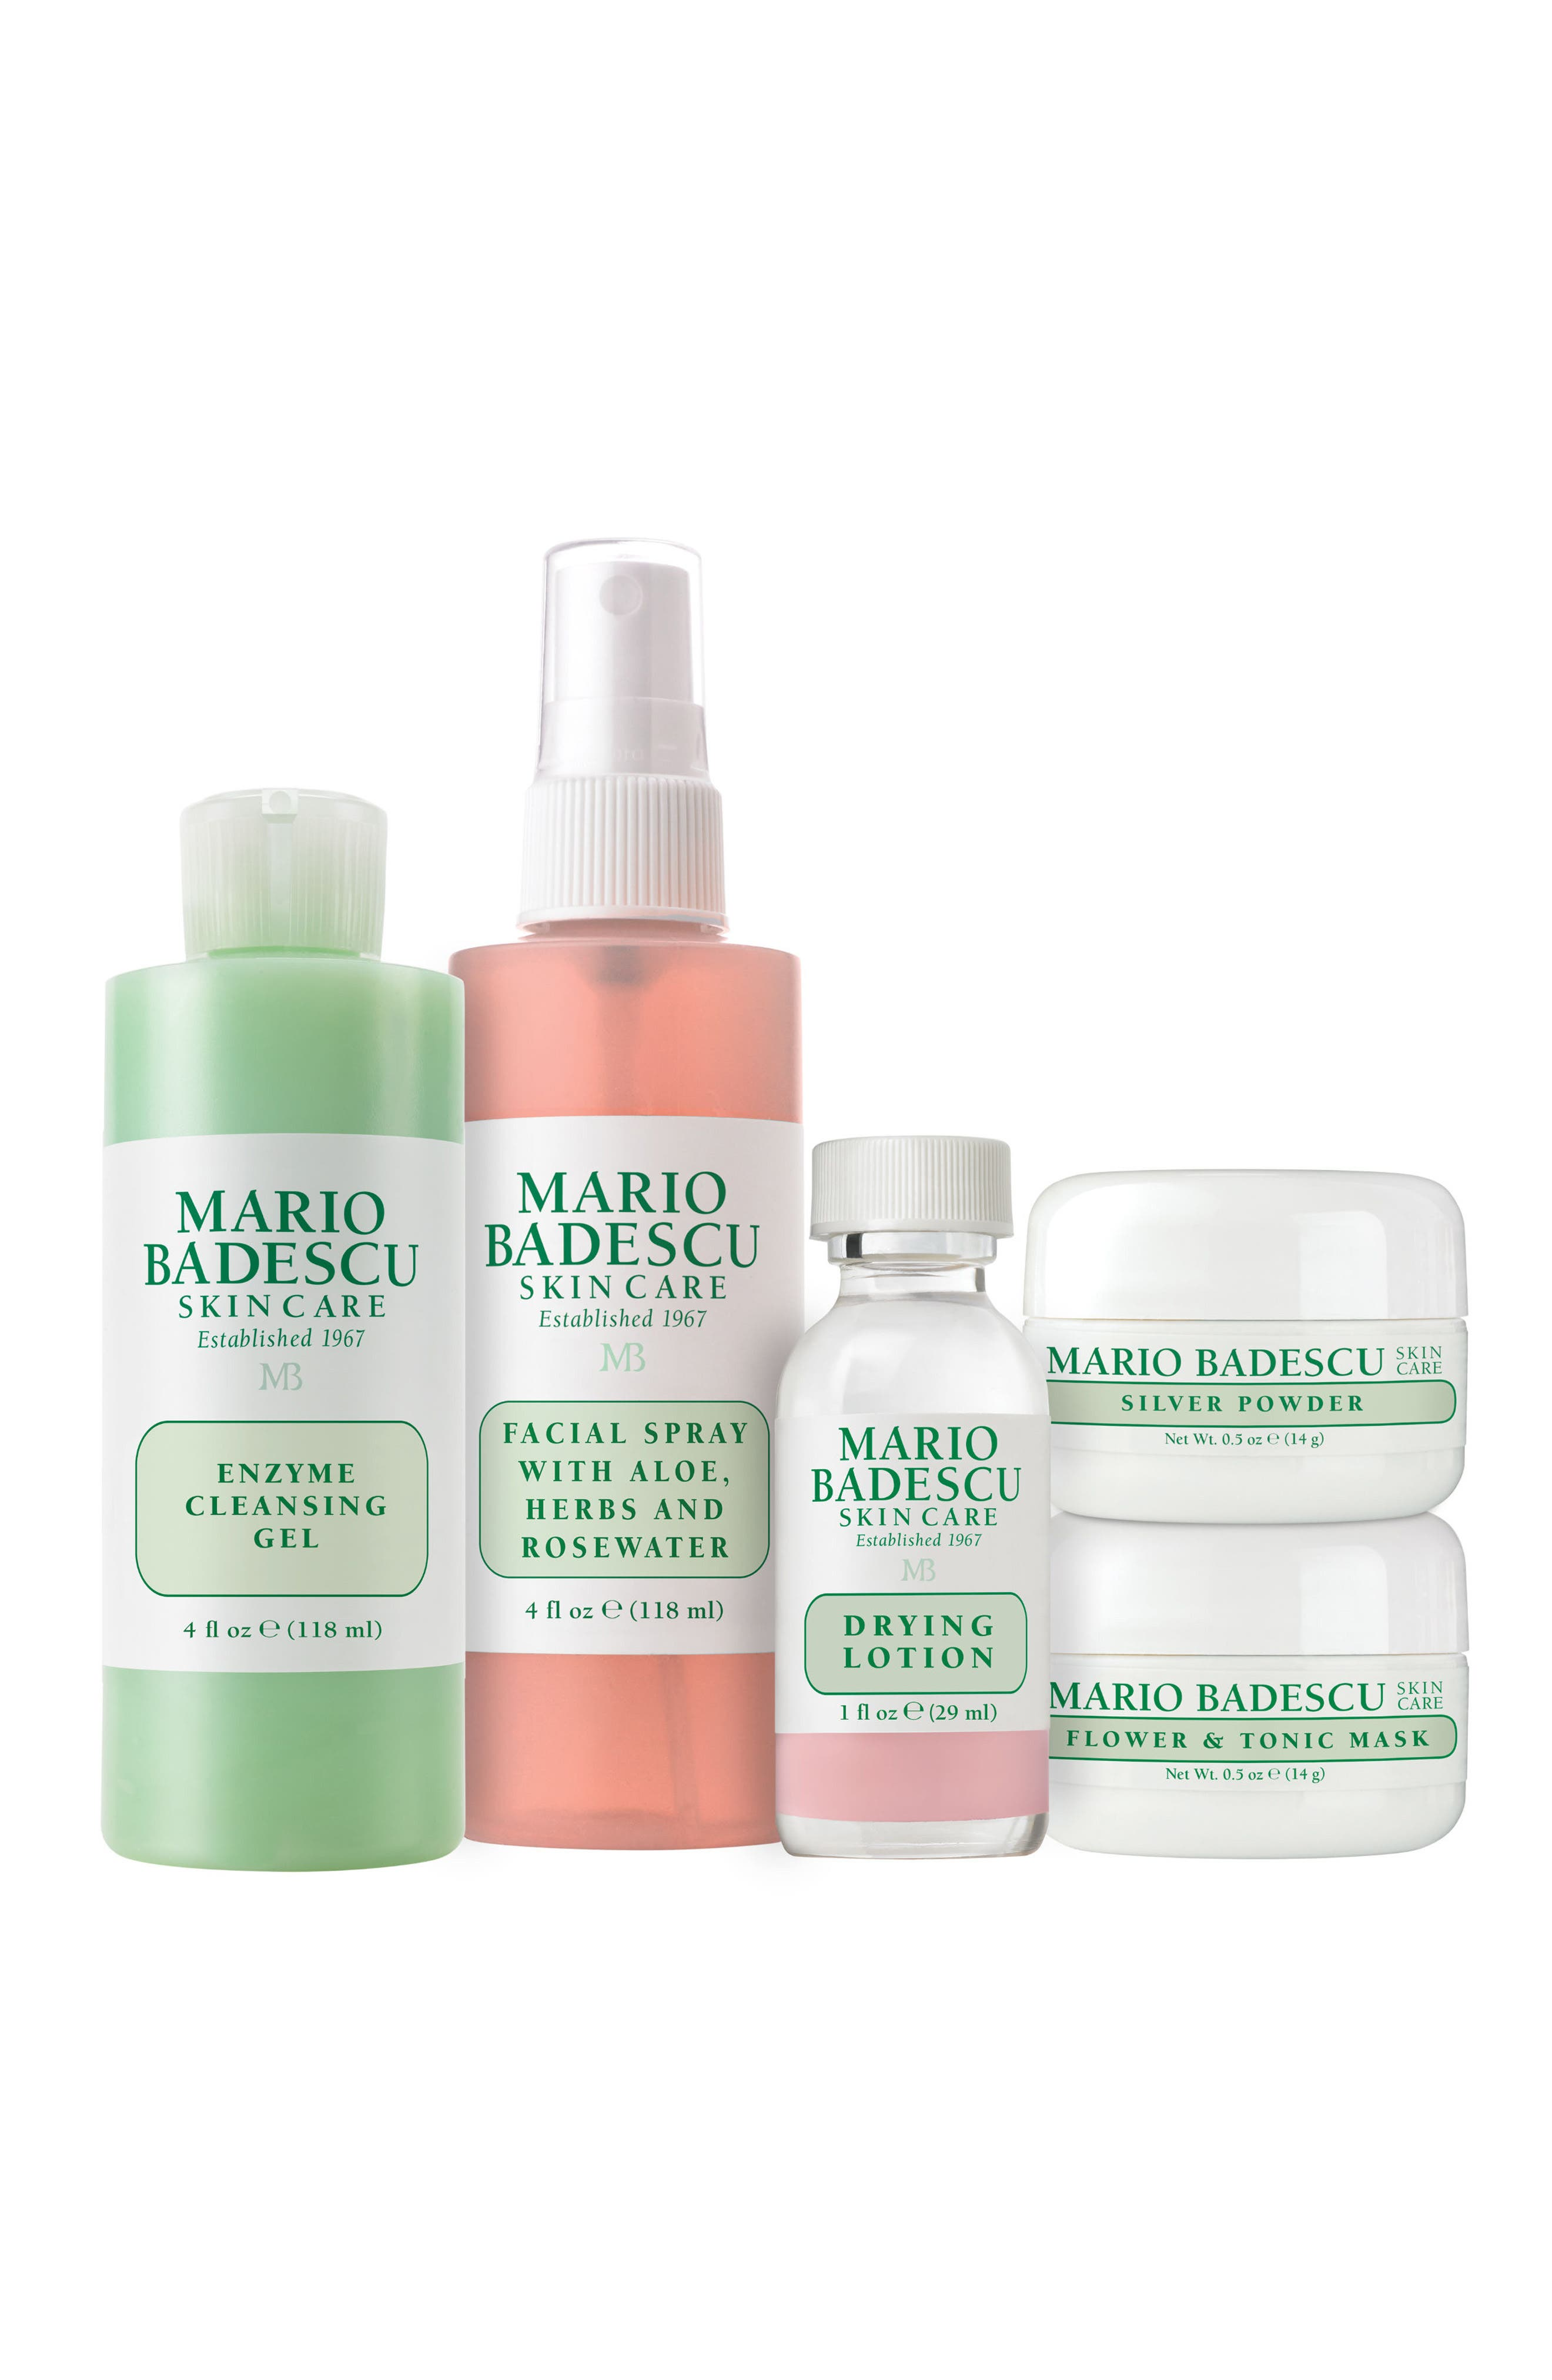 Mario Badescu 50th Anniversary Essentials Kit (Limited Edition) ($53 Value)